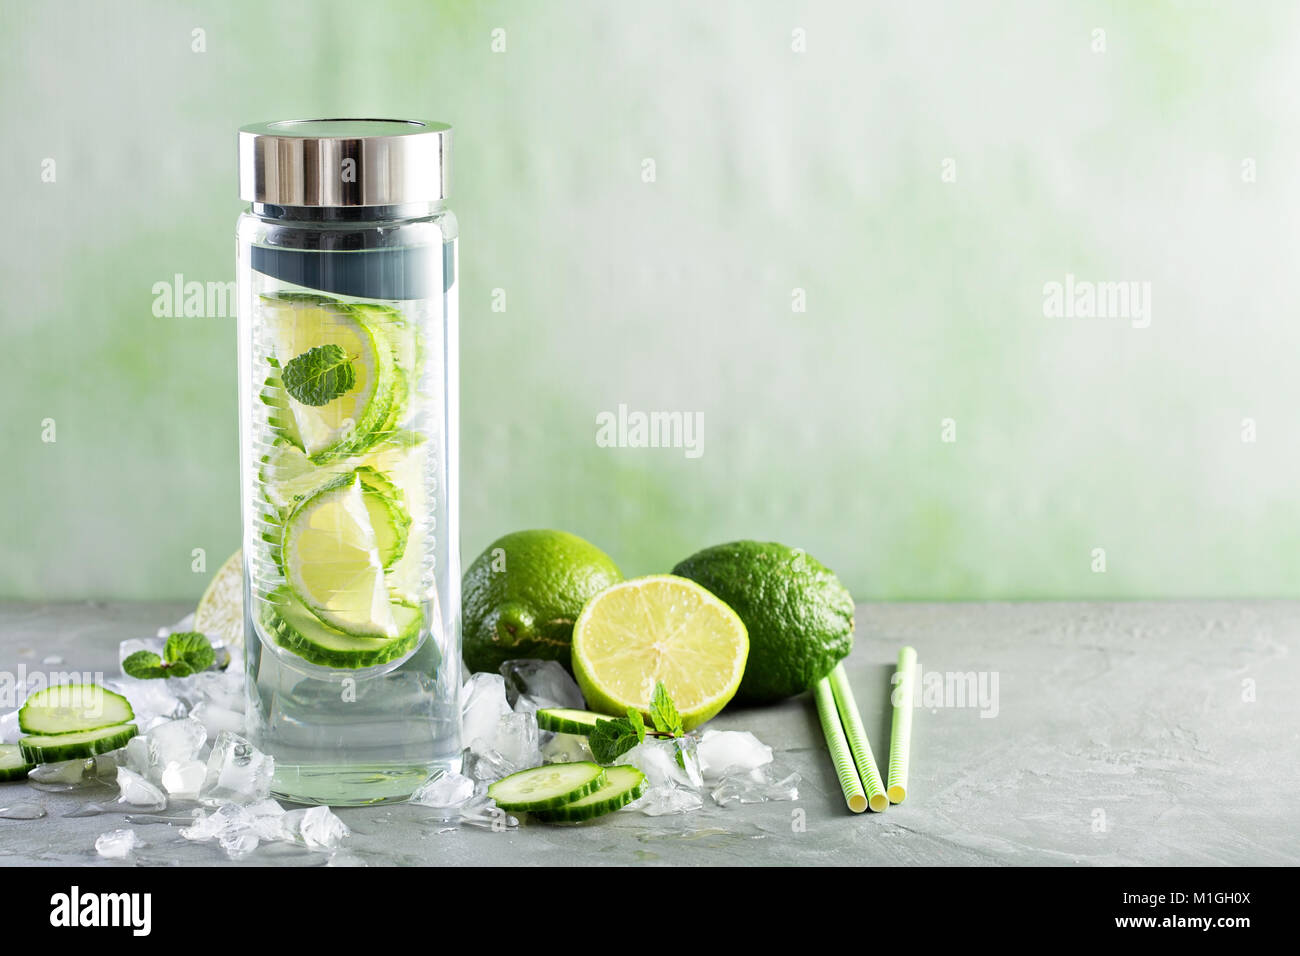 Infused water with lime and cucumber in a glass bottle - Stock Image